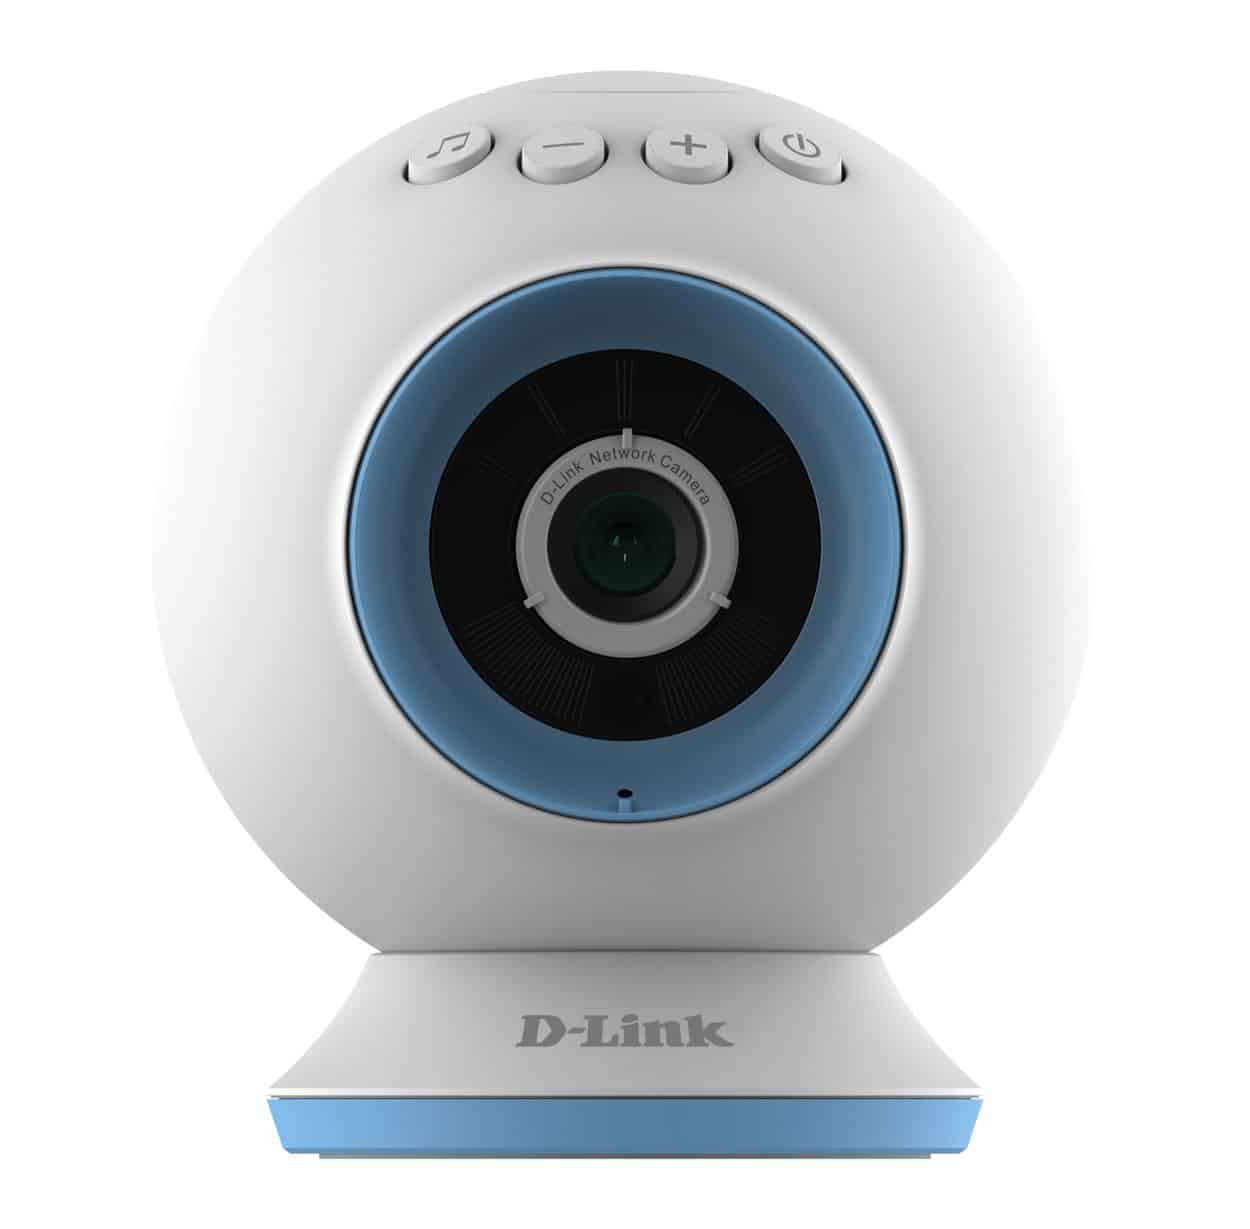 D-Link Wi-Fi HD Baby Camera DCS-825L review